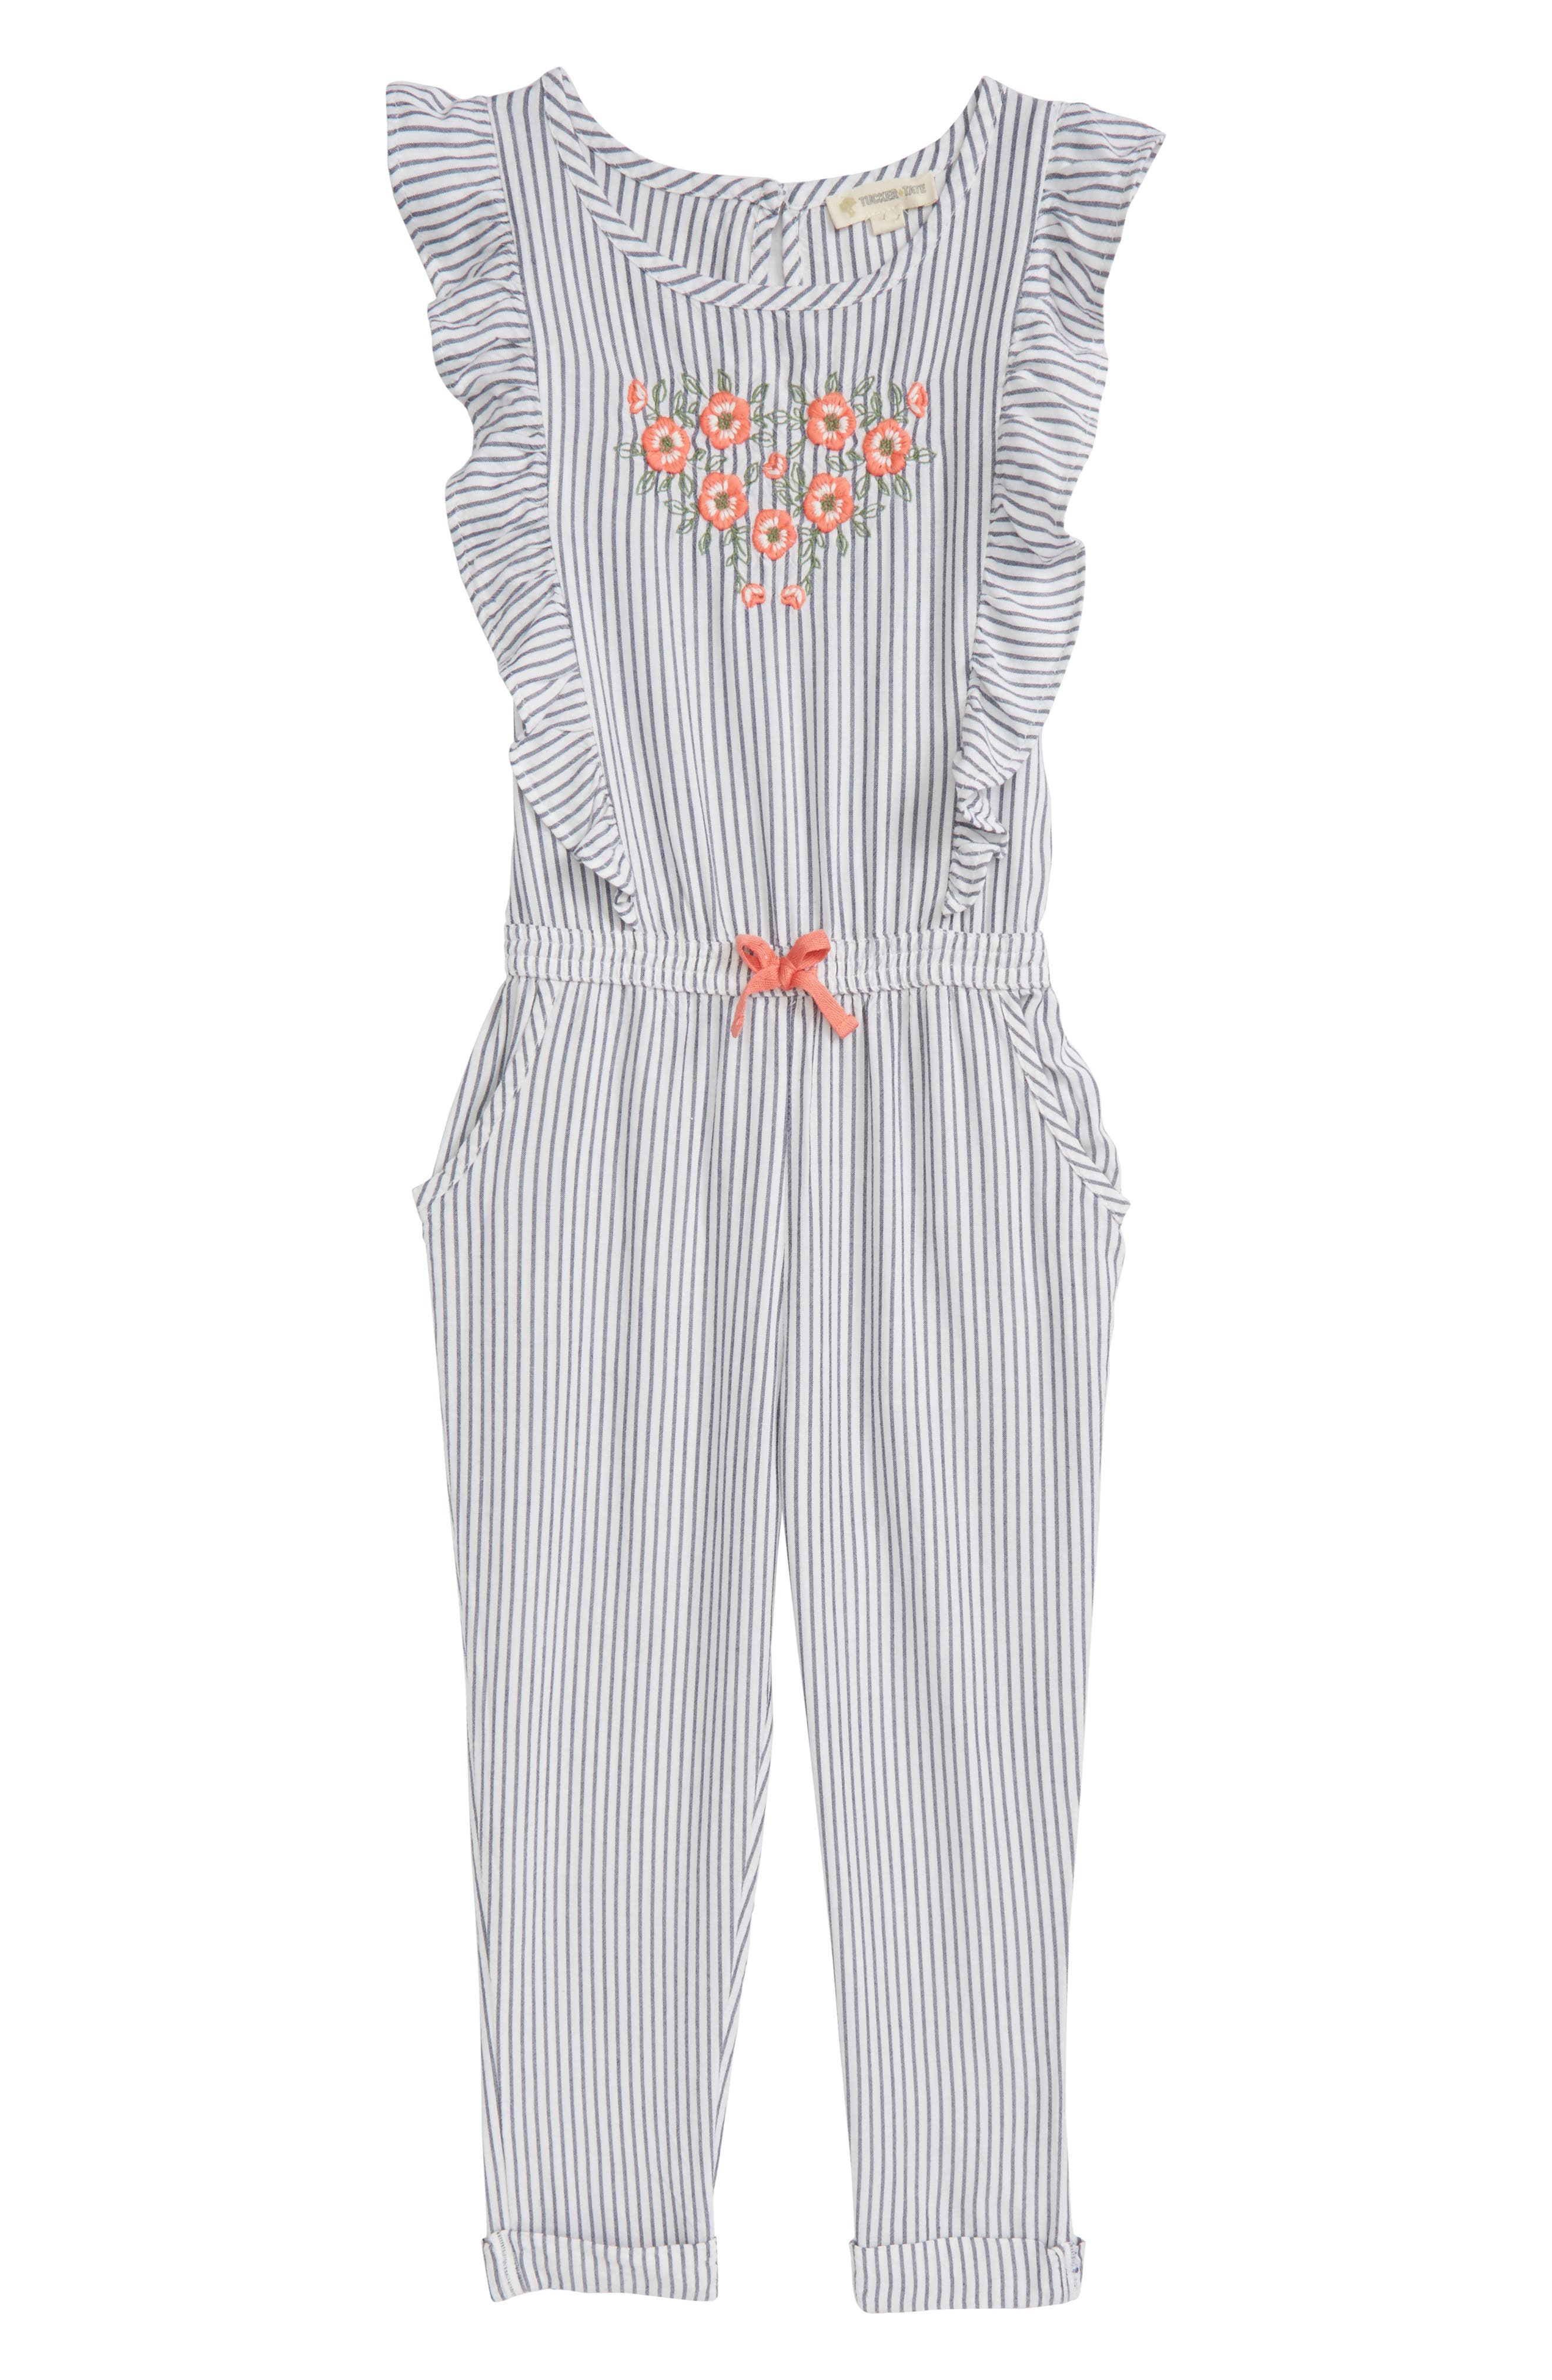 Flutter Sleeve Embroidered Romper,                         Main,                         color, White- Blue Stripe